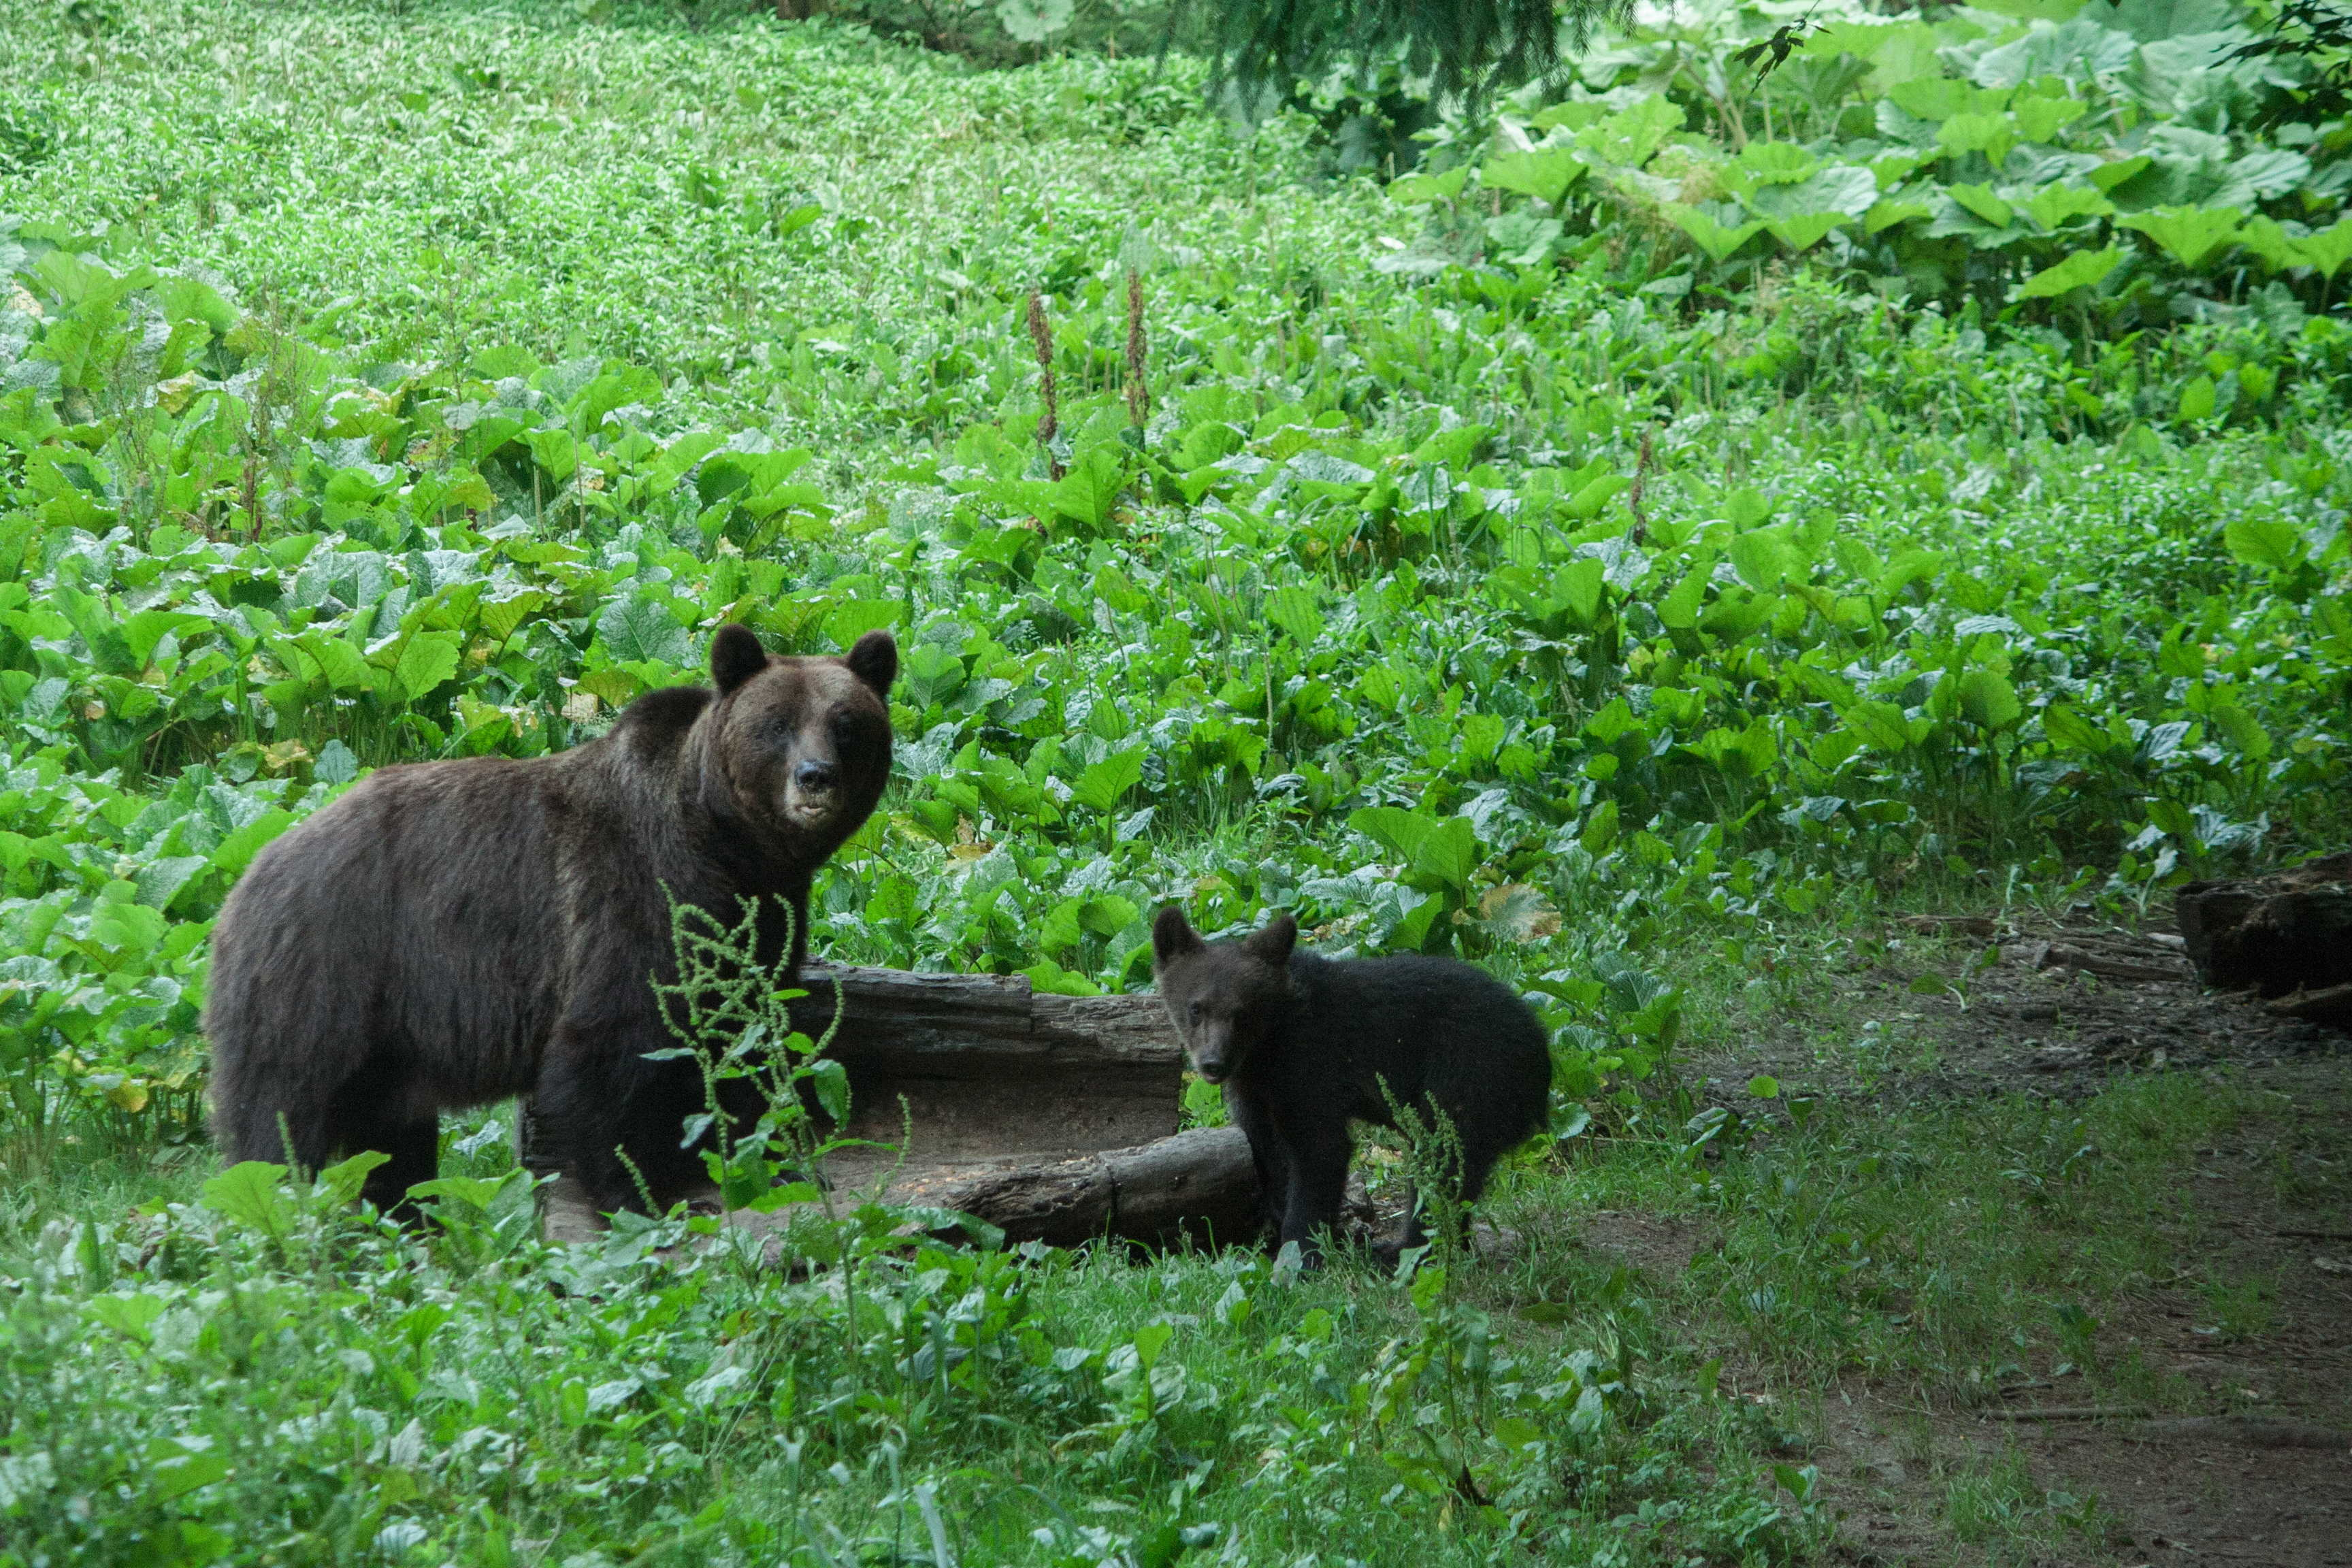 Mother bear and cub, Romania